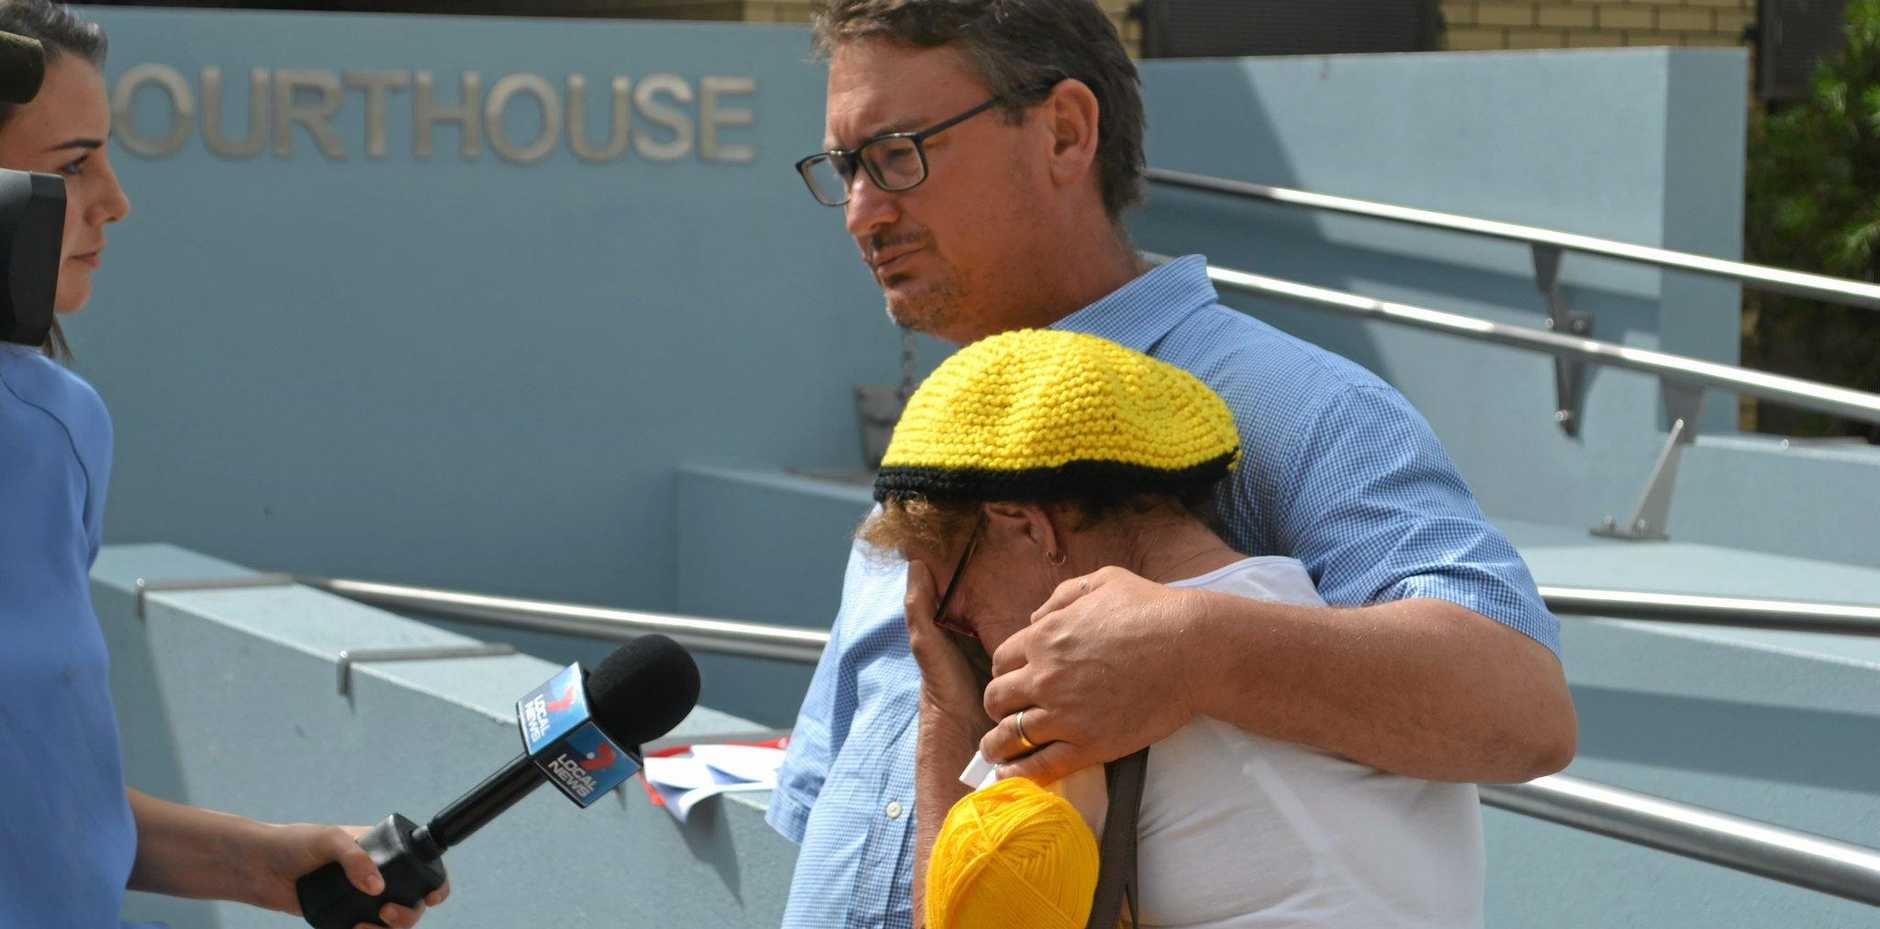 LINC CHARGED: Brian Bender and his mother, Pam, after an emotional day in Dalby Magistrates Court during which Linc Energy was formally charged for alleged environmental harm in the Hopeland farming belt, near Chinchilla.